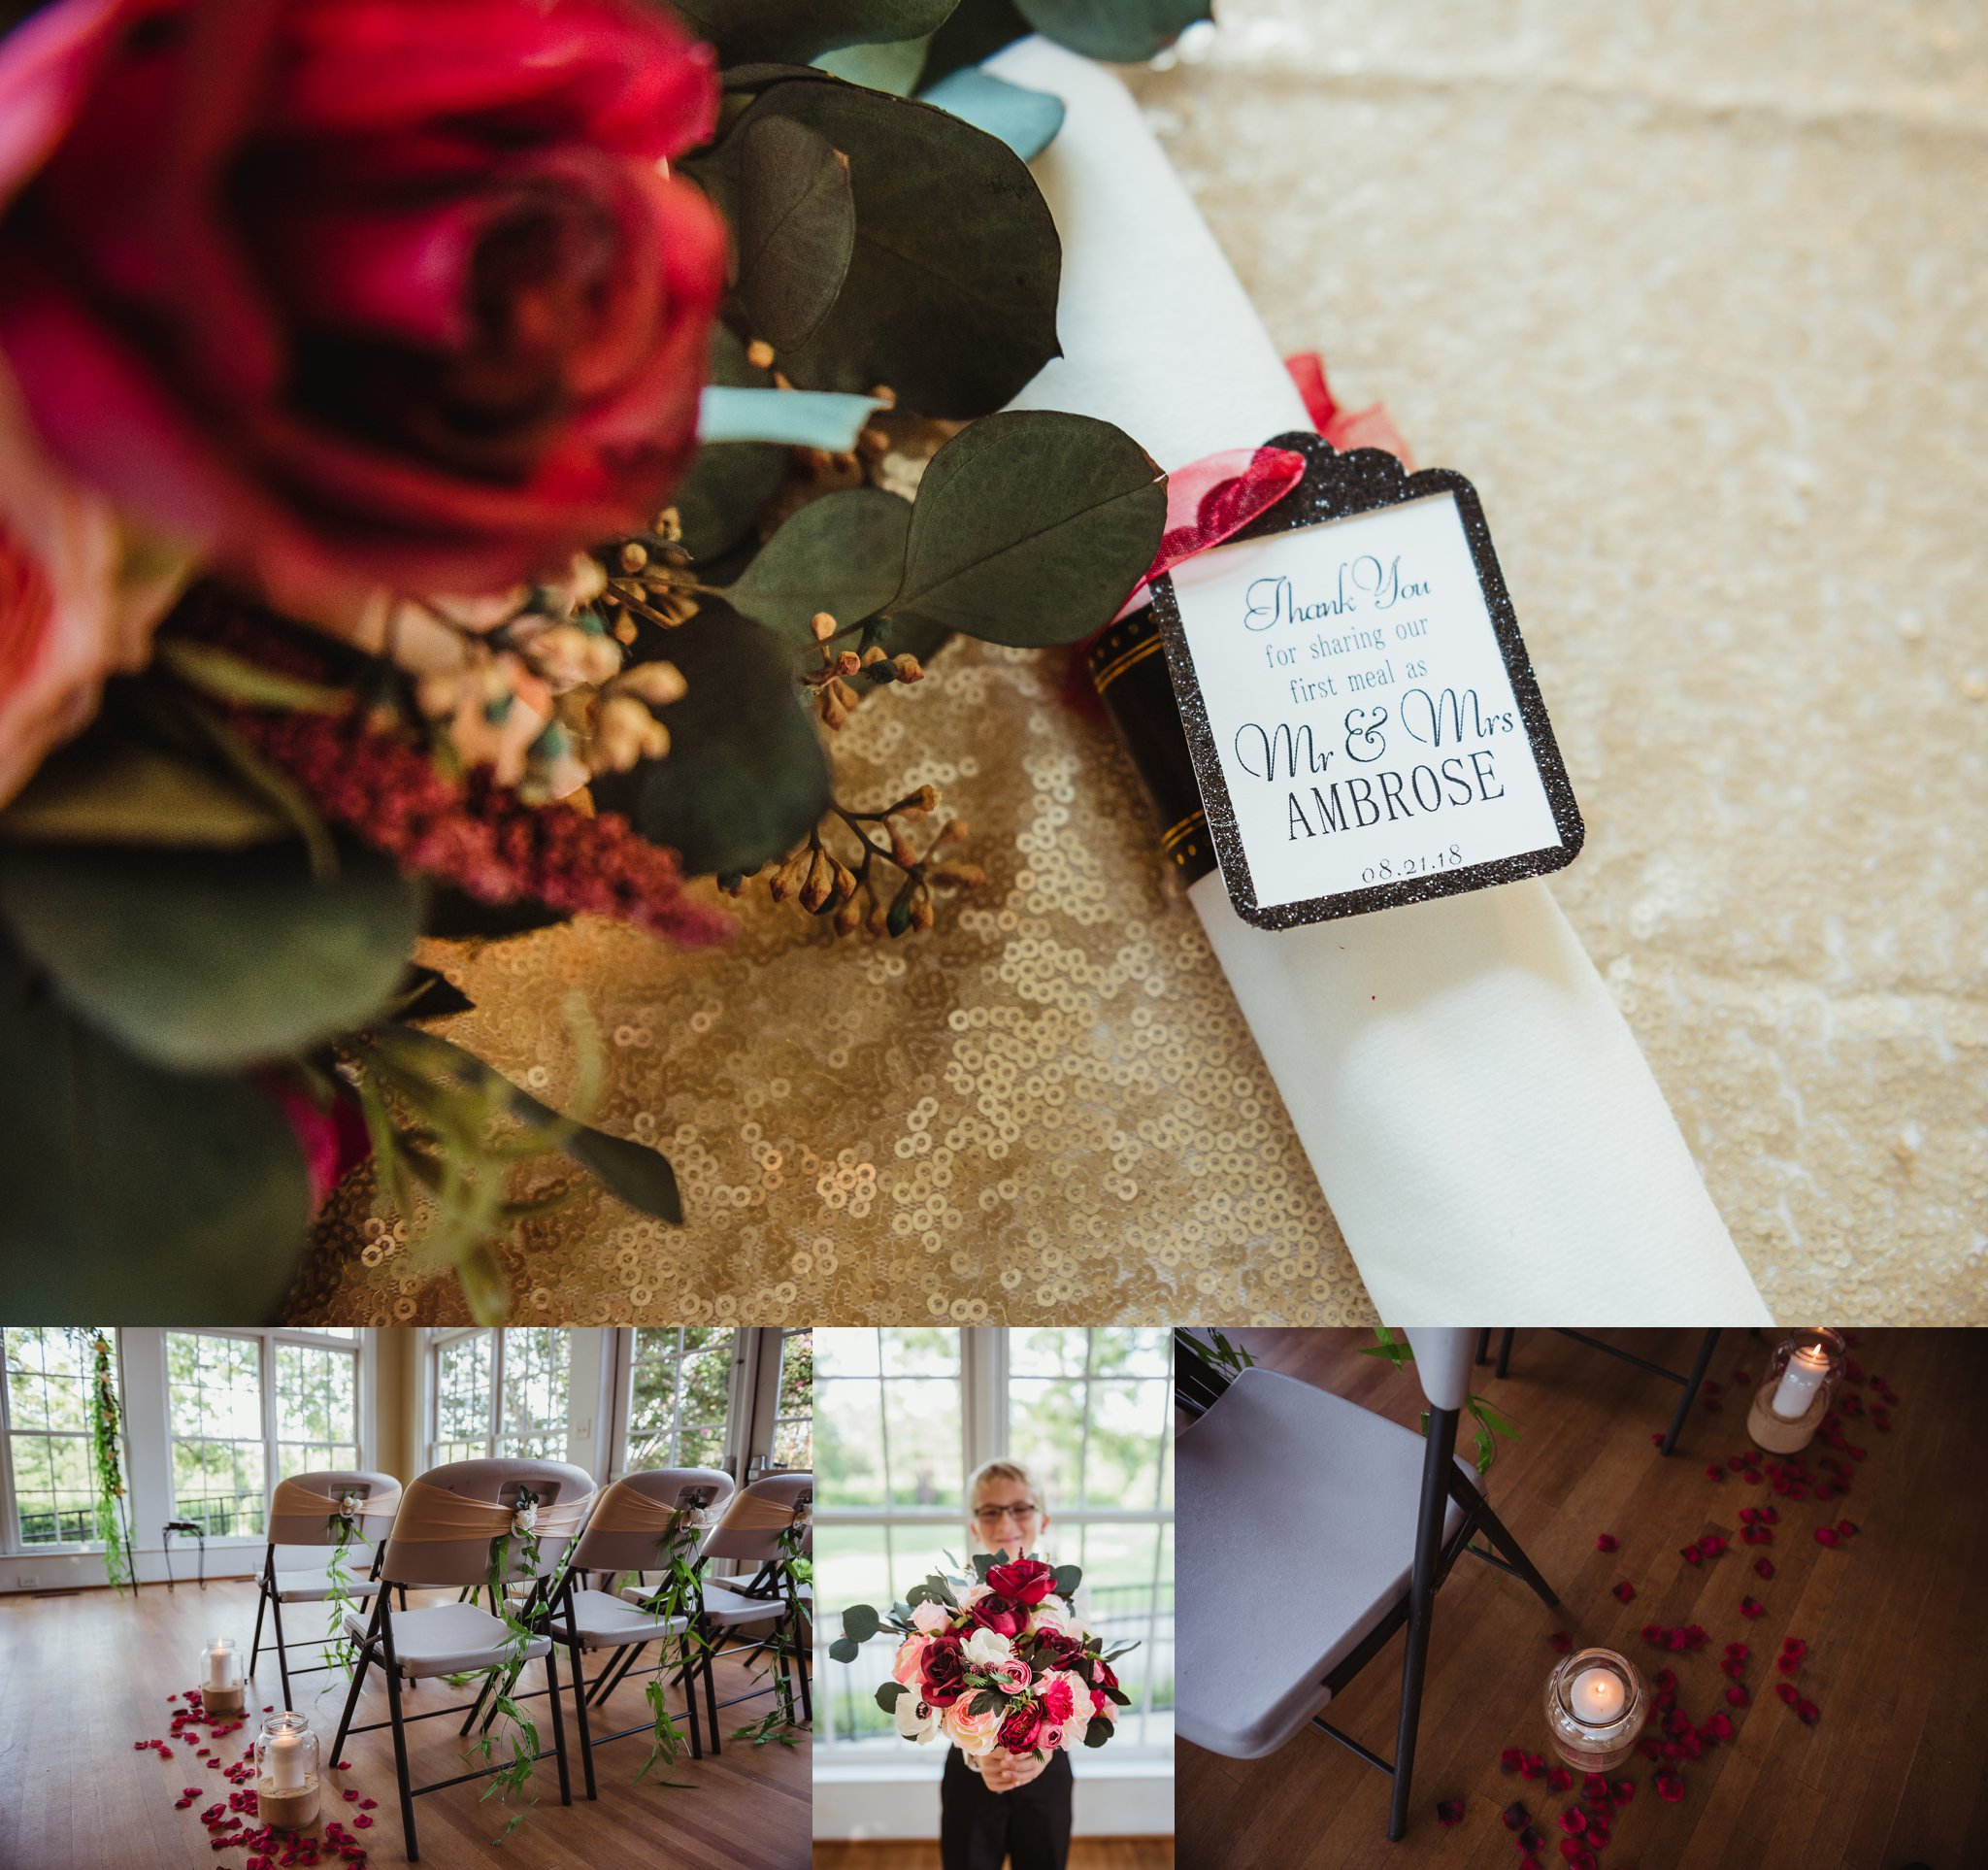 Wedding details include DIY flowers, candles, and a cute best man at the intimate wedding in Raleigh, photos by Rose Trail Images.